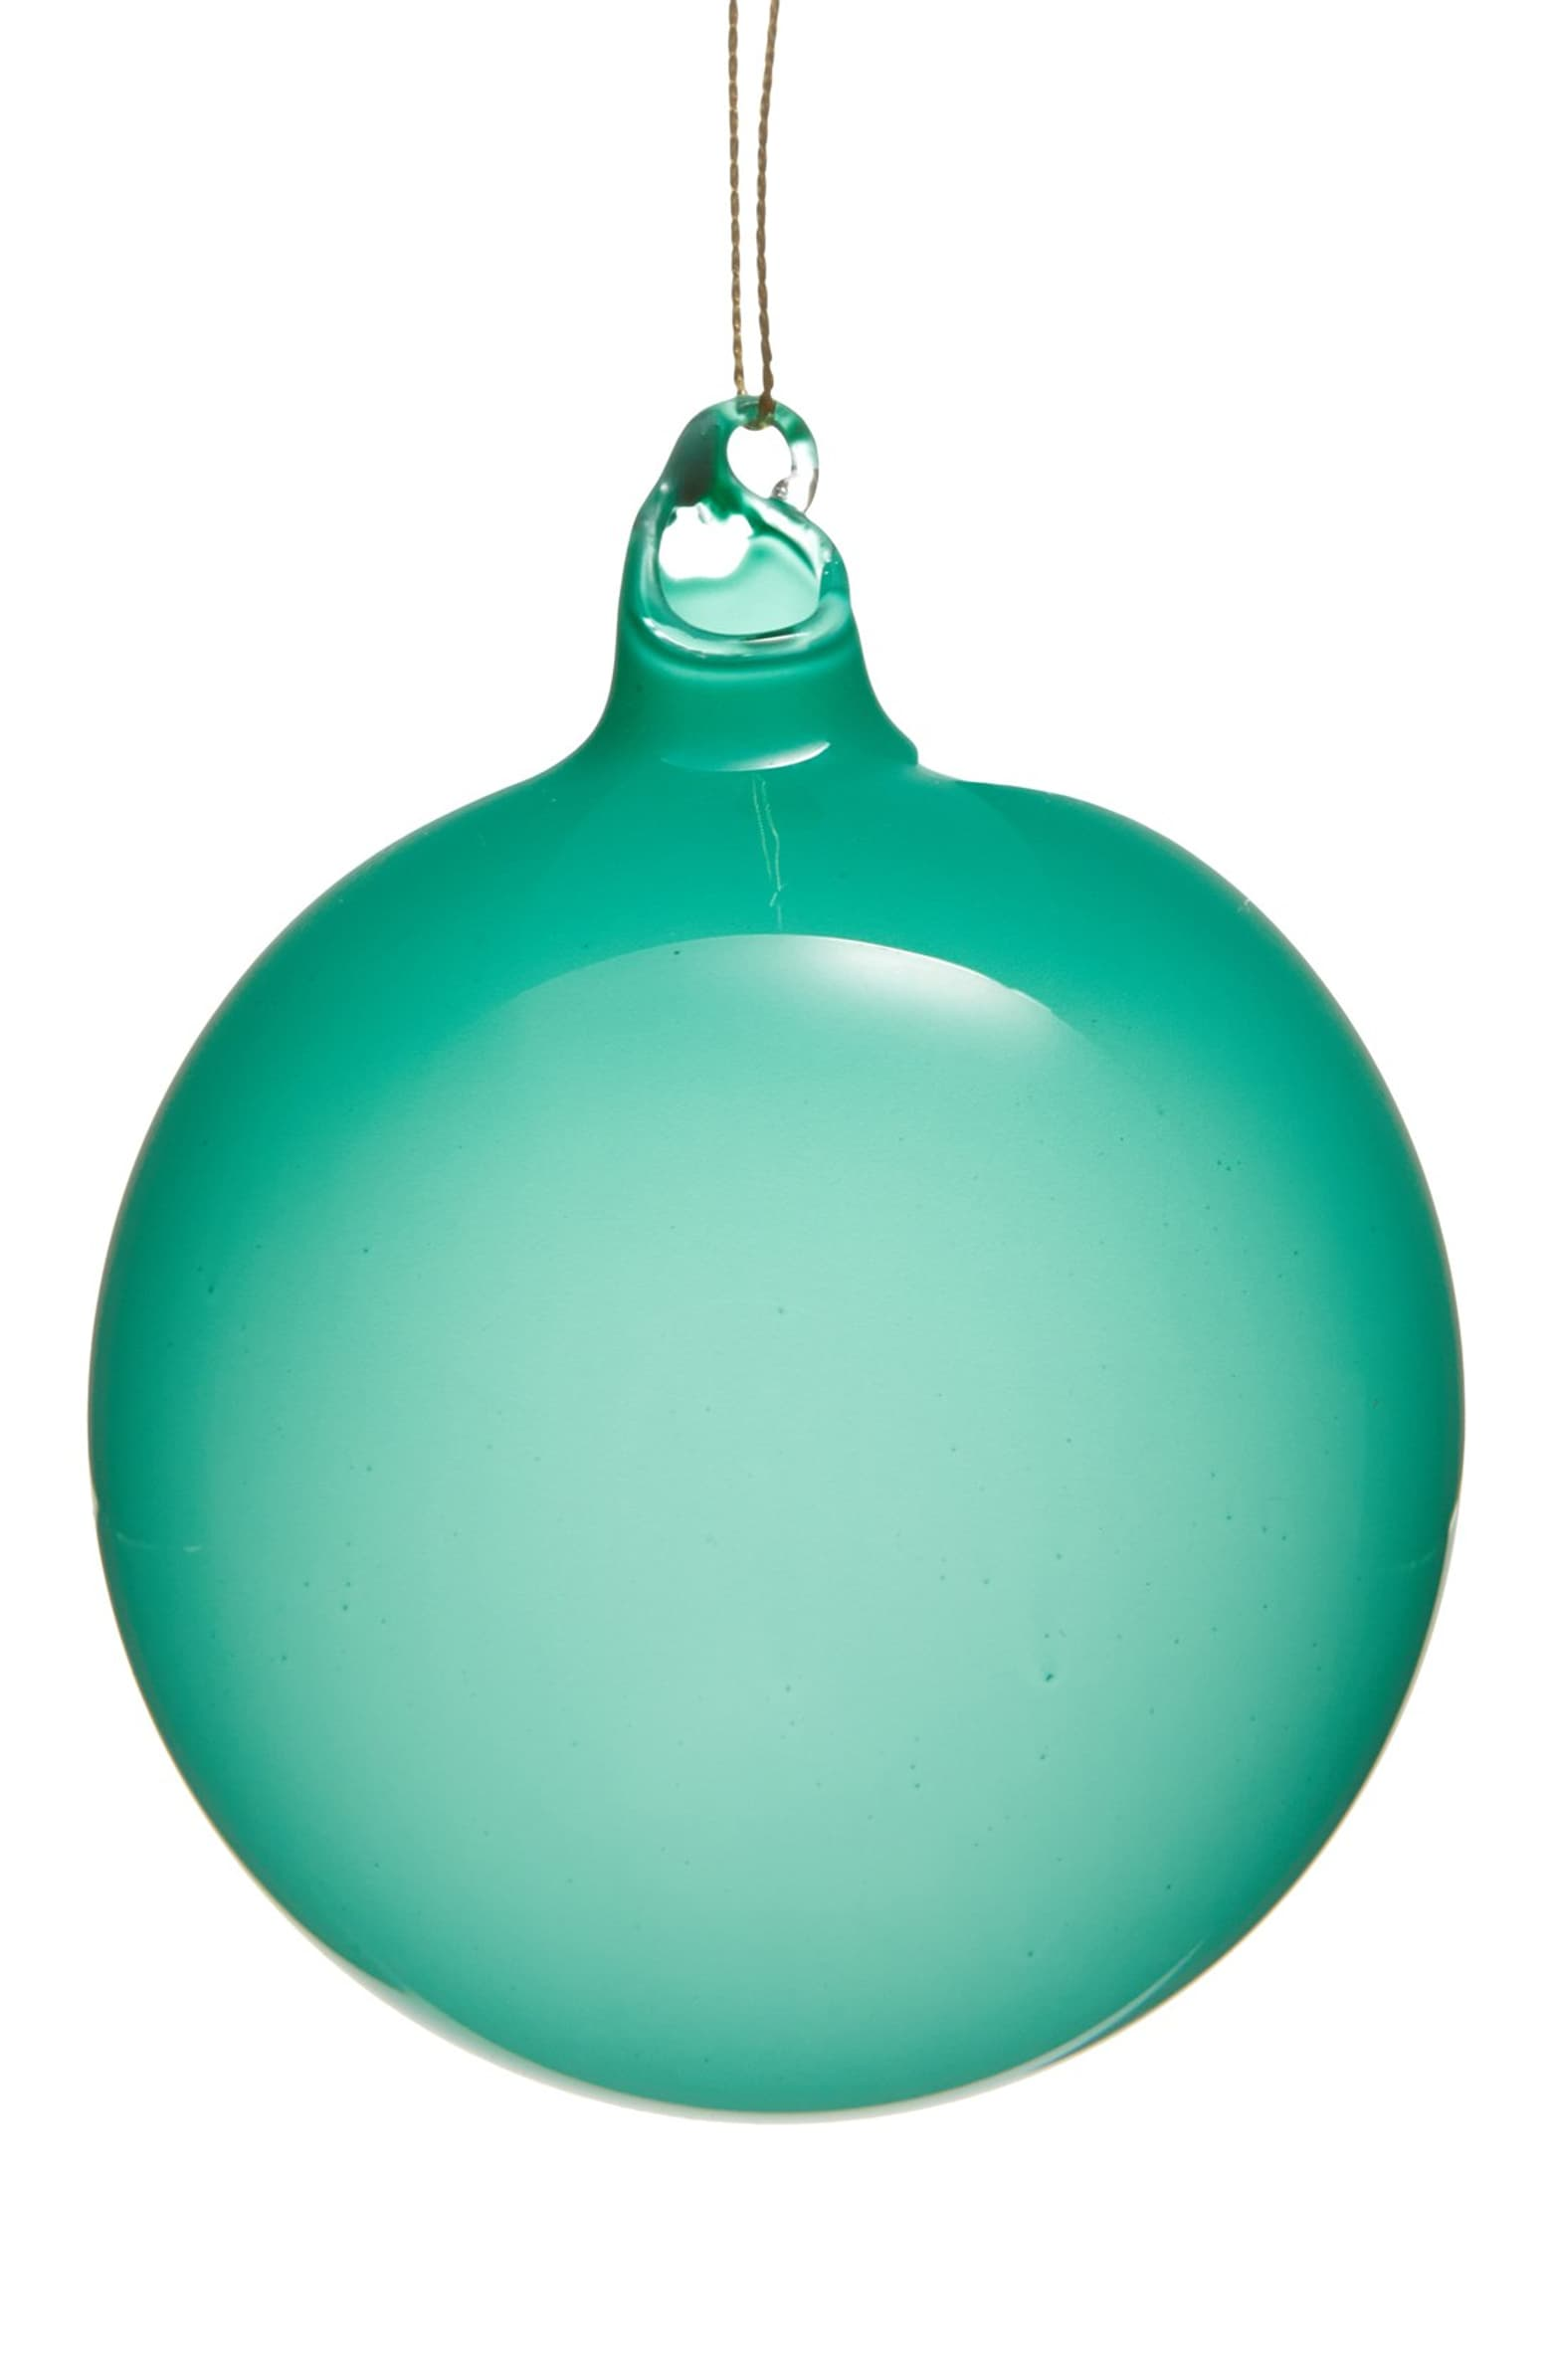 BUBBLEGUM BALL ORNAMENTS - TURQUOISE (100mm x3) - Made by McNamara